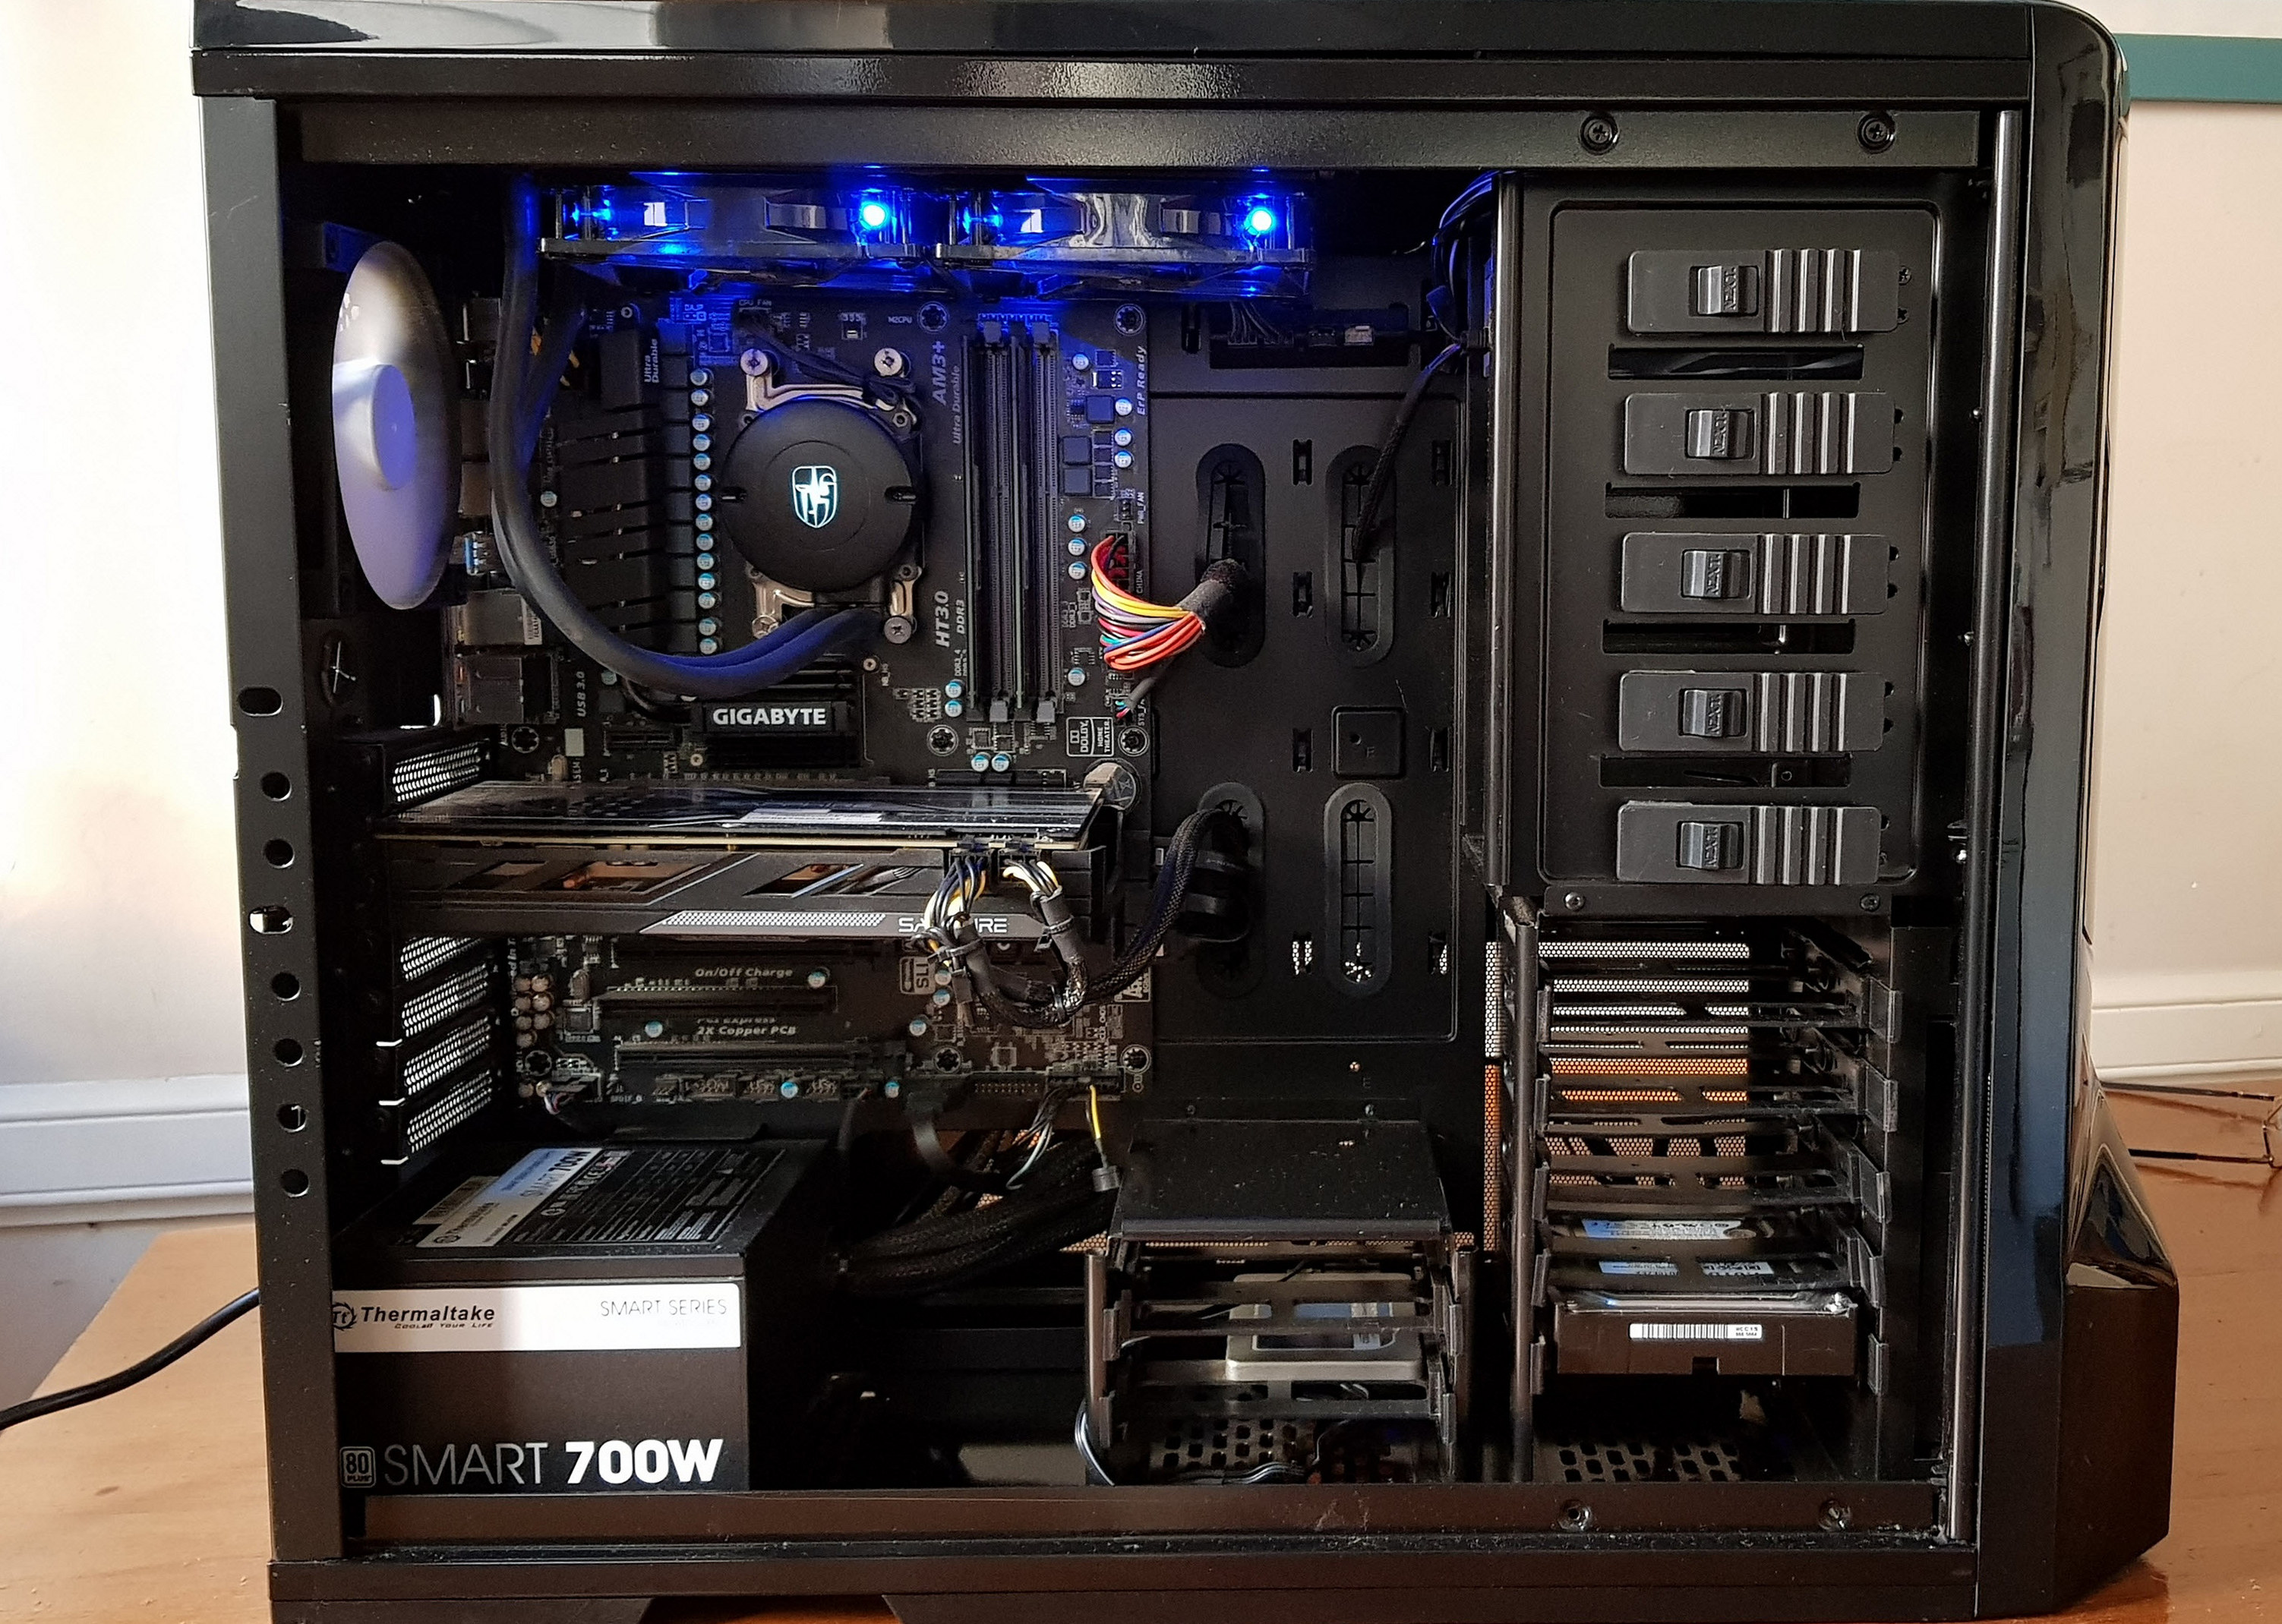 A chance to upgrade CPU and mobo, but is it worth it? | TechPowerUp